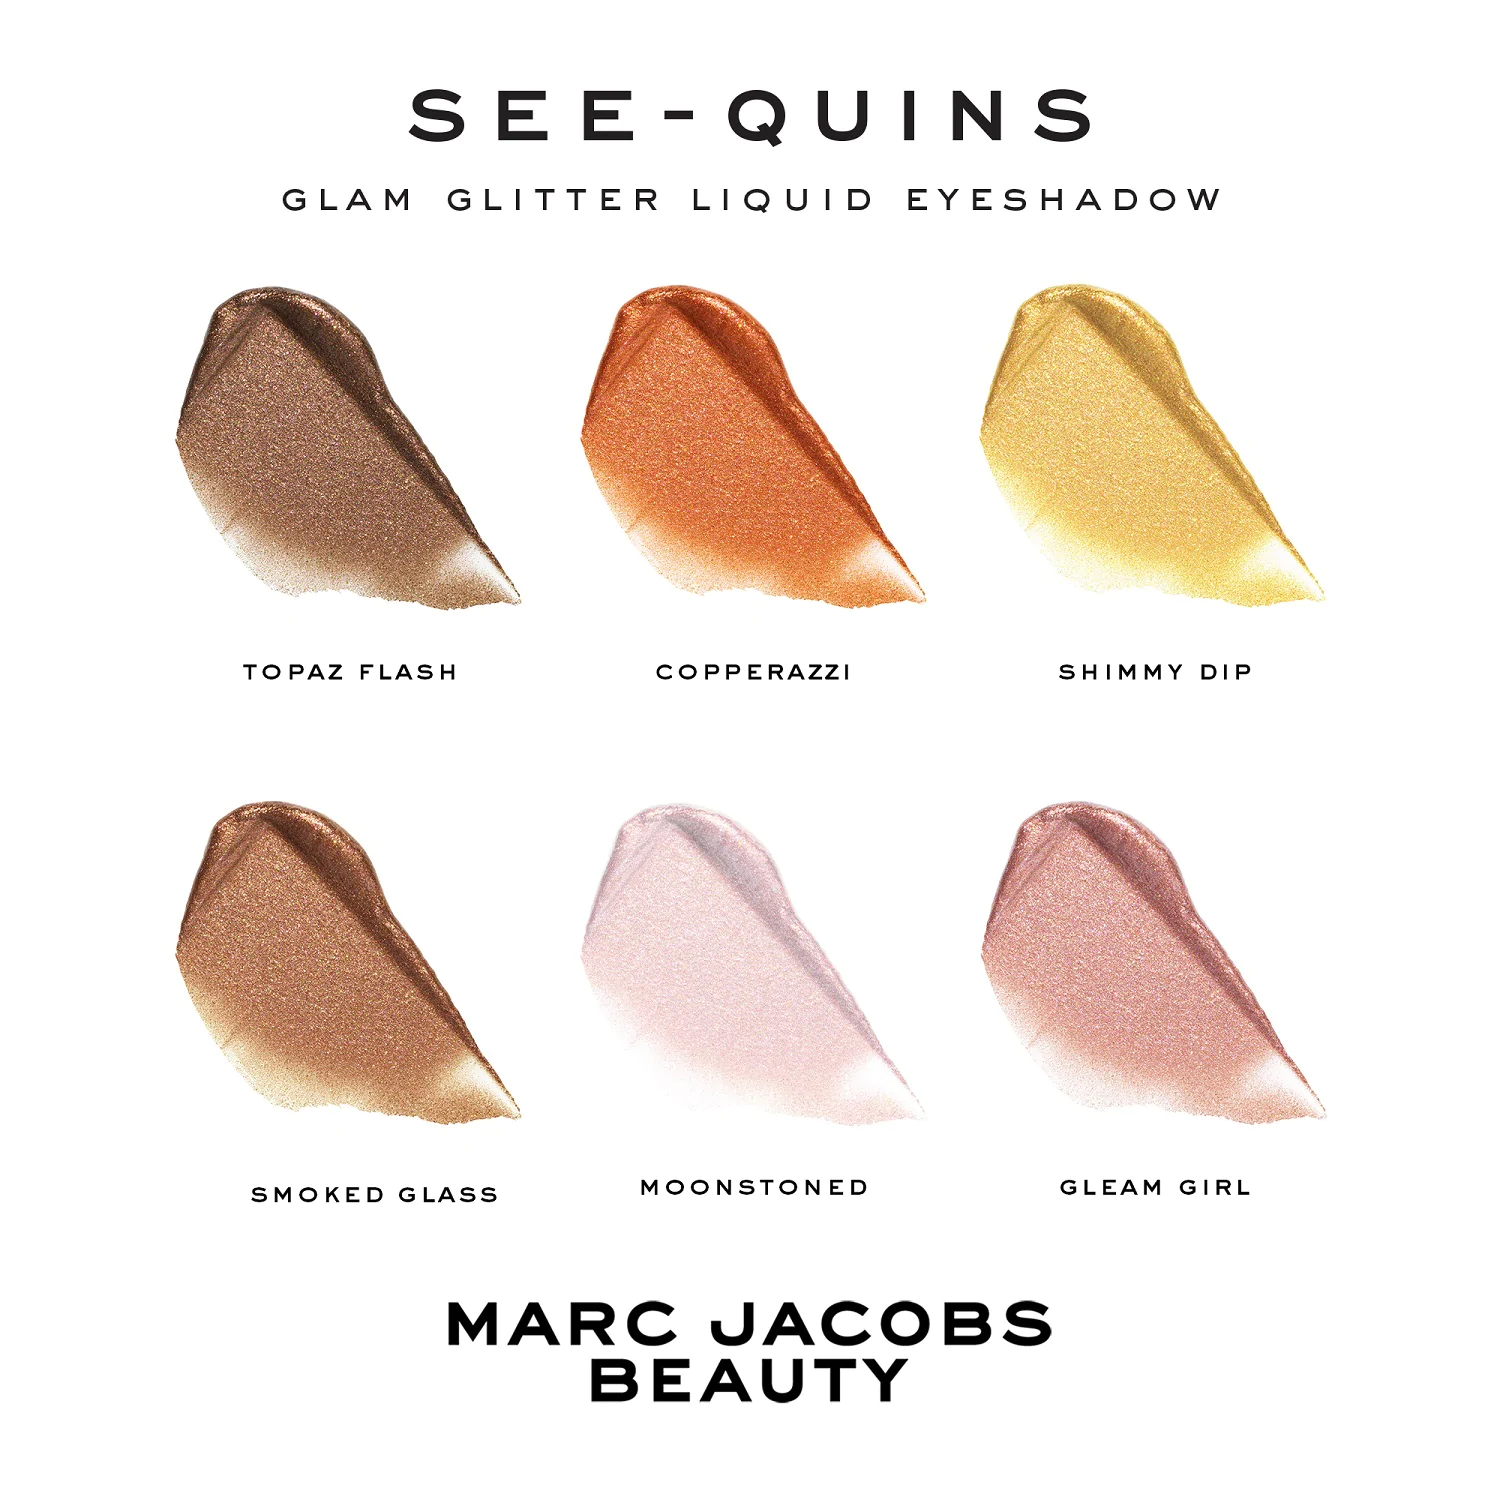 MARC JACOBS BEAUTY - SEE-QUINS, GLAM GLITTER LIQUID EYE SHADOW